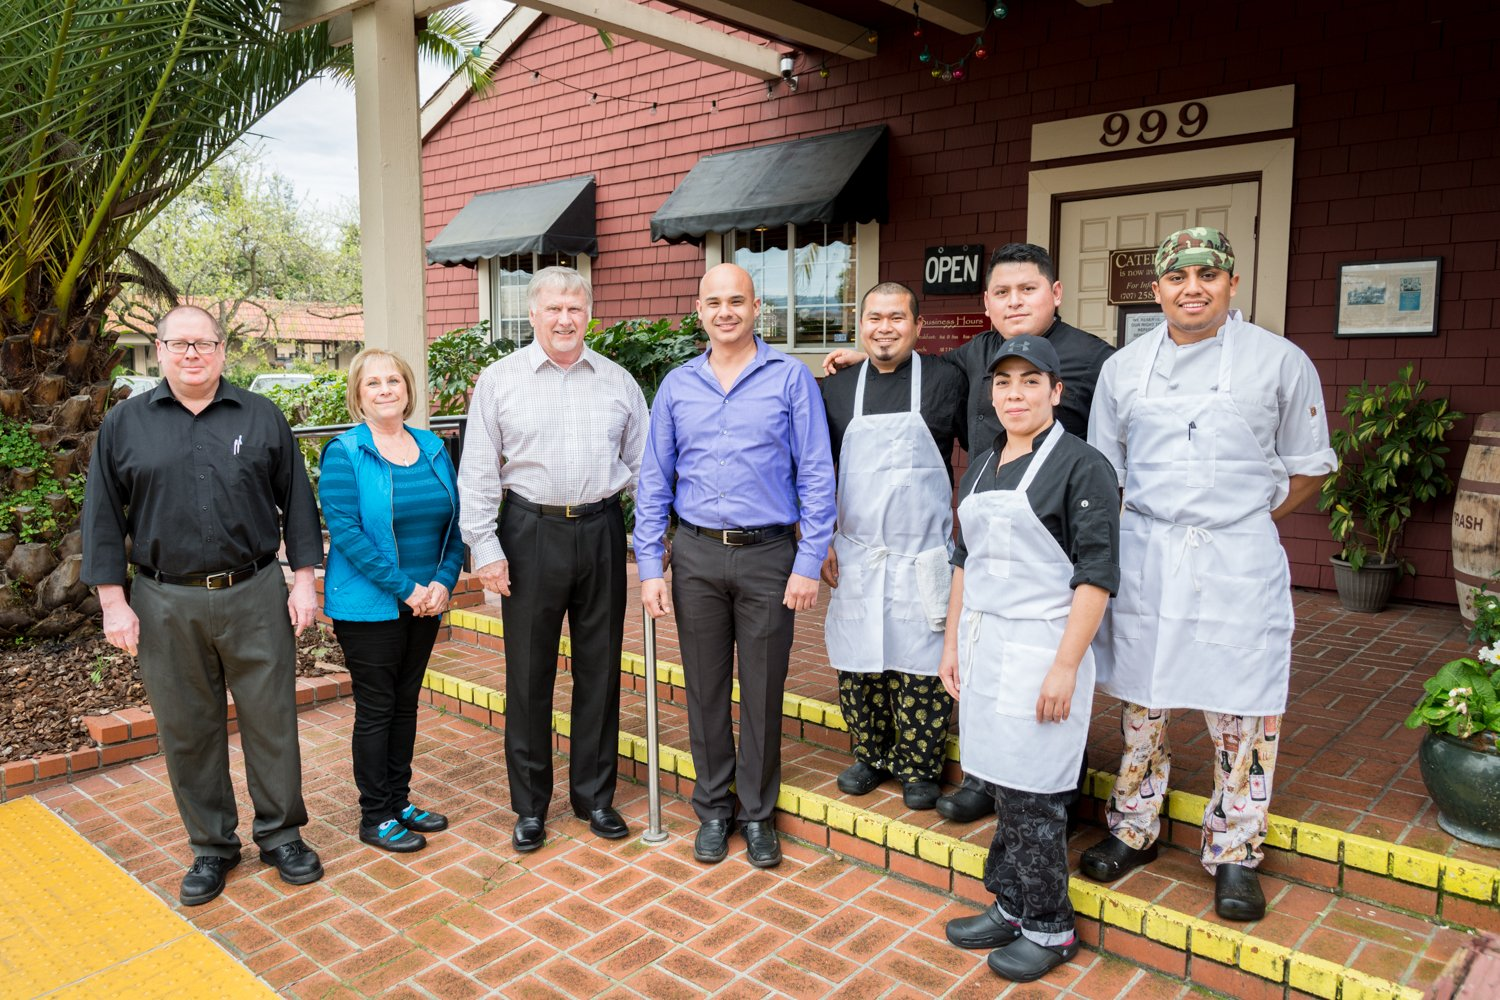 Trancas Steakhouse staff